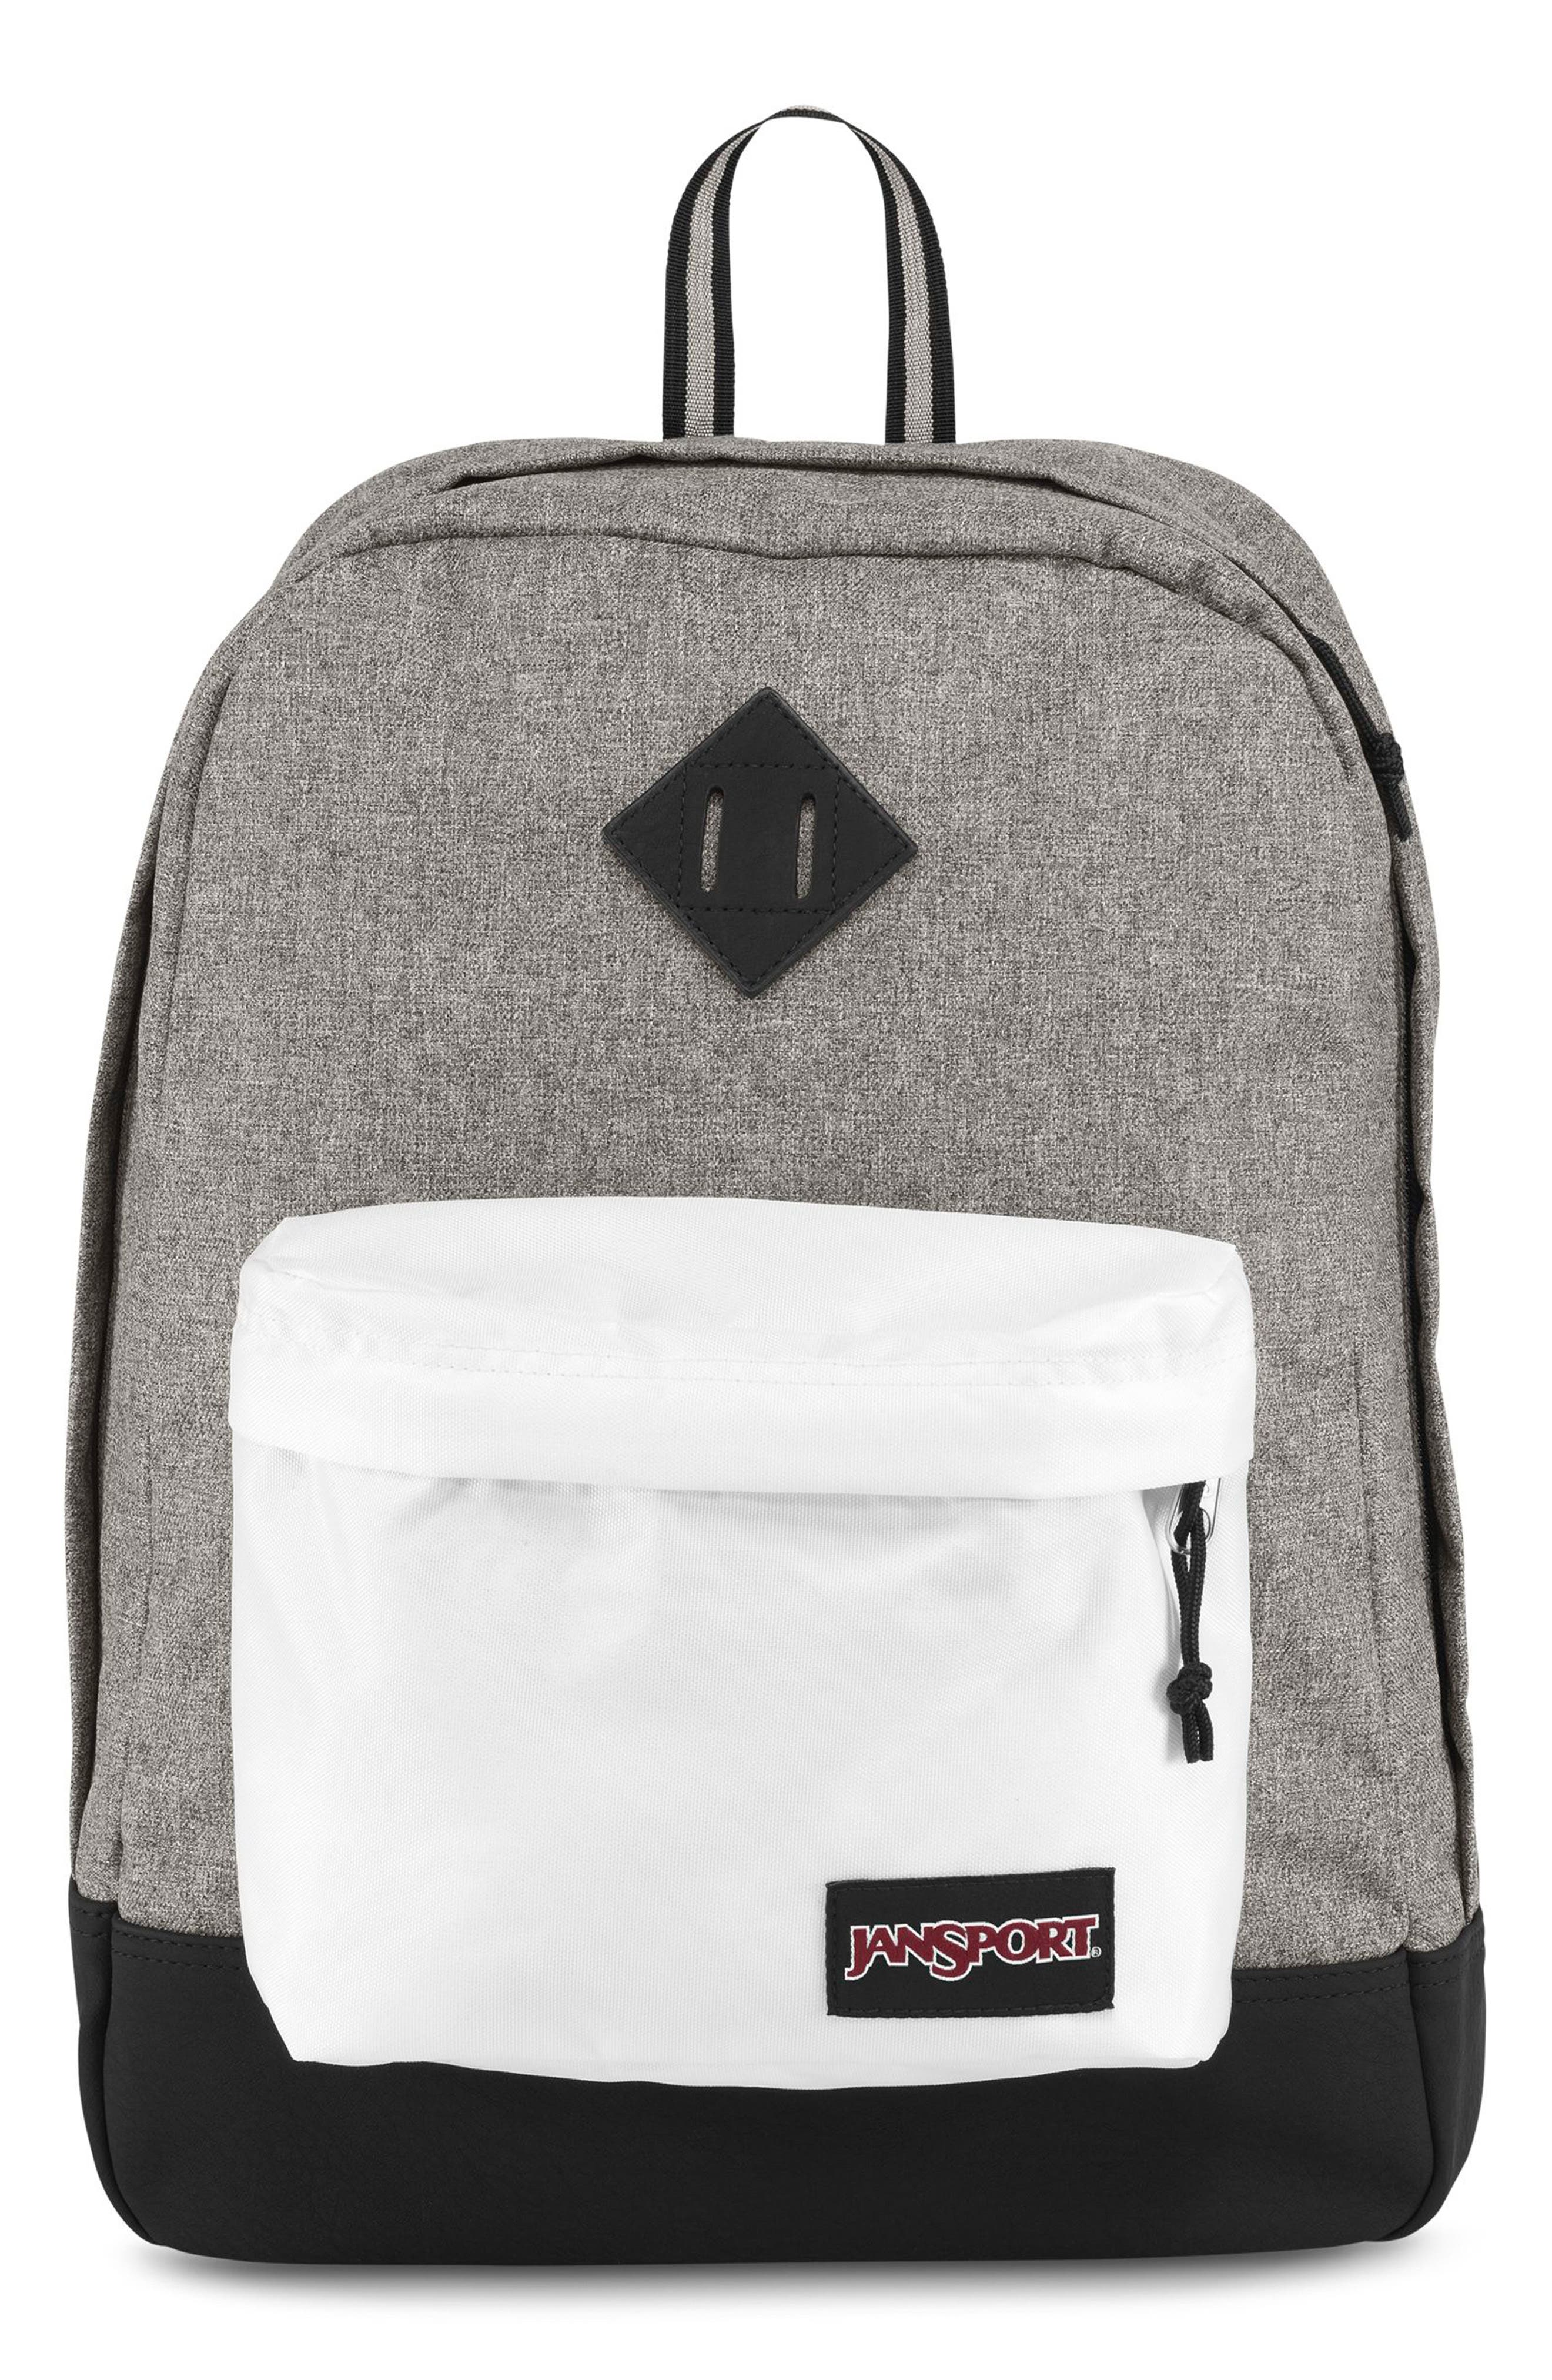 JANSPORT Super FX DL Backpack